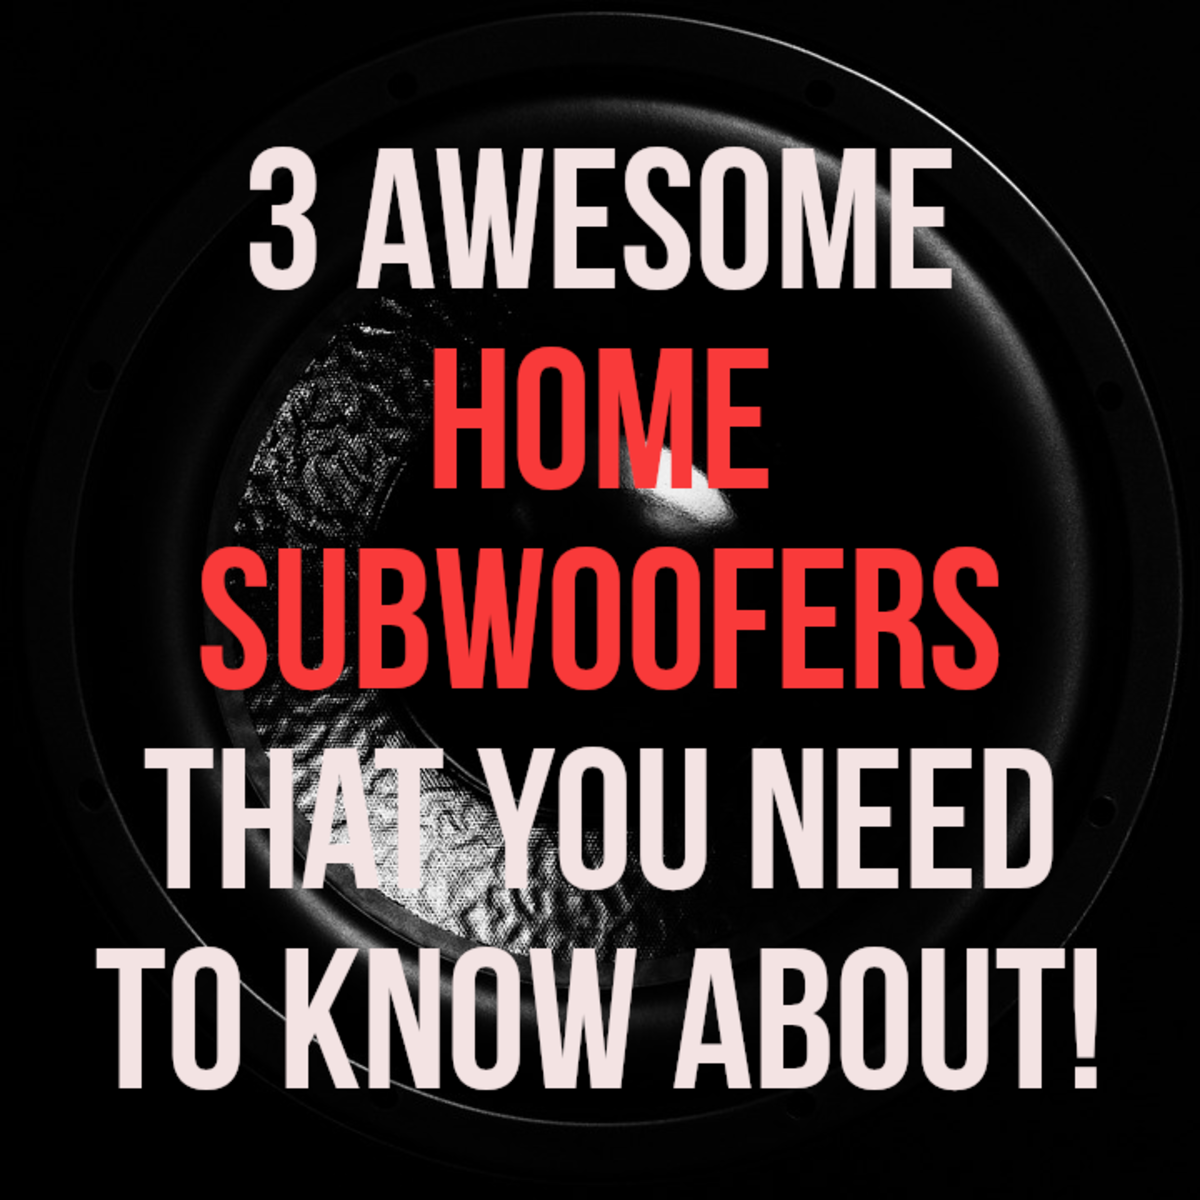 Looking for the best home subwoofers? Read on for my recommendations...